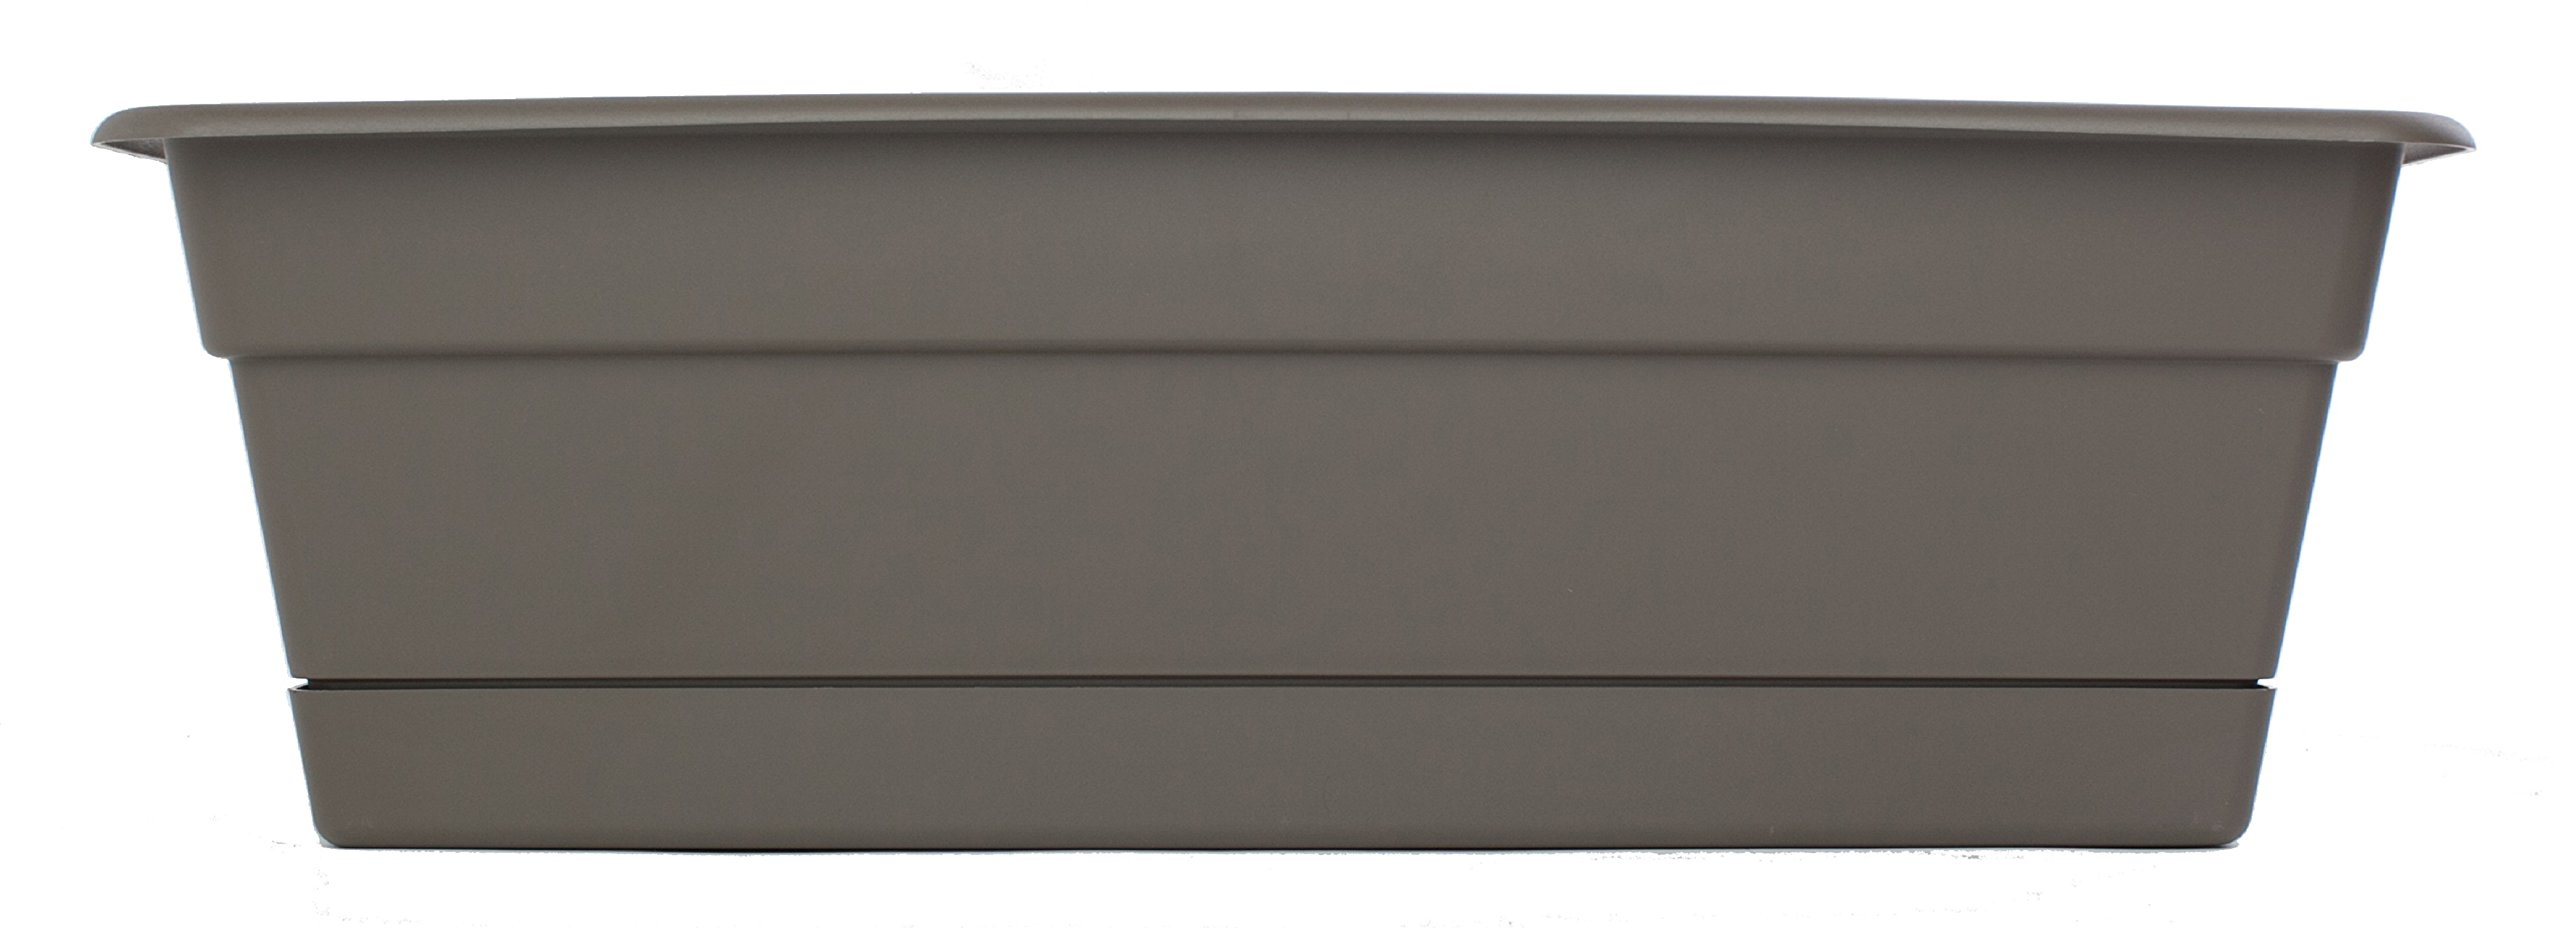 Bloem DCBT2460-12 12-Pack Dura Cotta Plant Window Box, 24-Inch, Peppercorn by Bloem